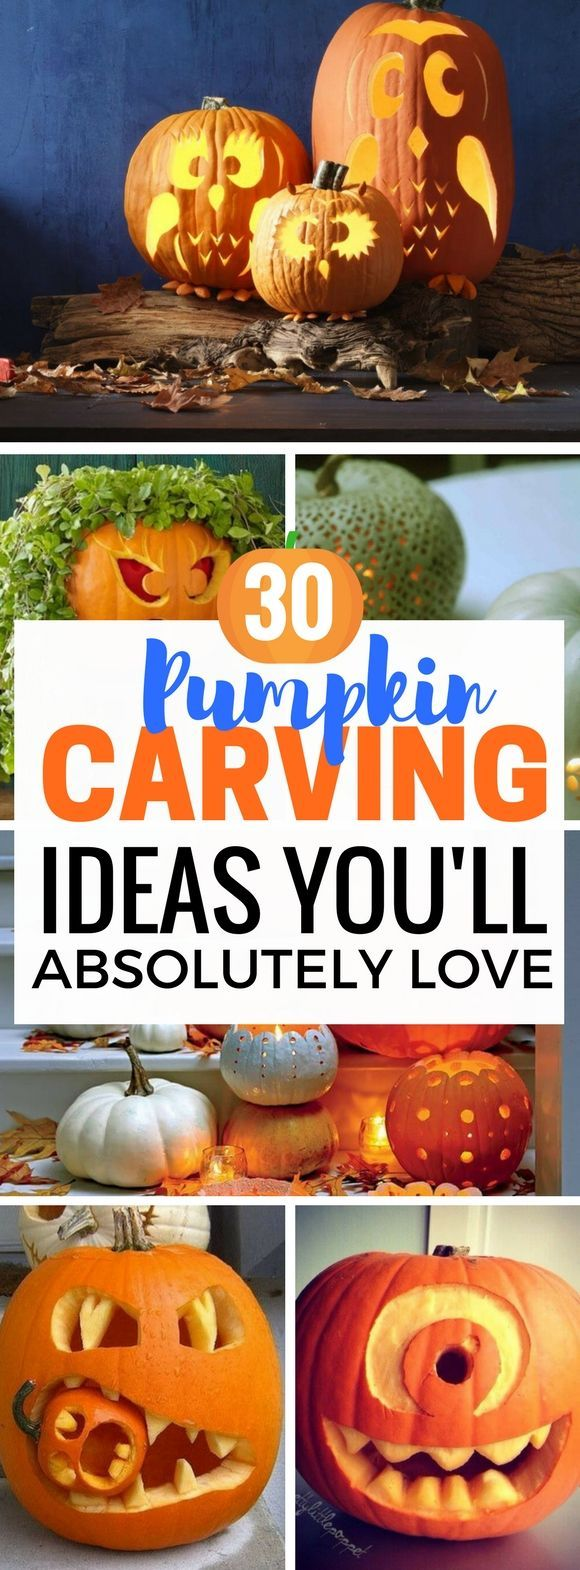 2578 best Fall Decorating Ideas images on Pinterest | Creative ...